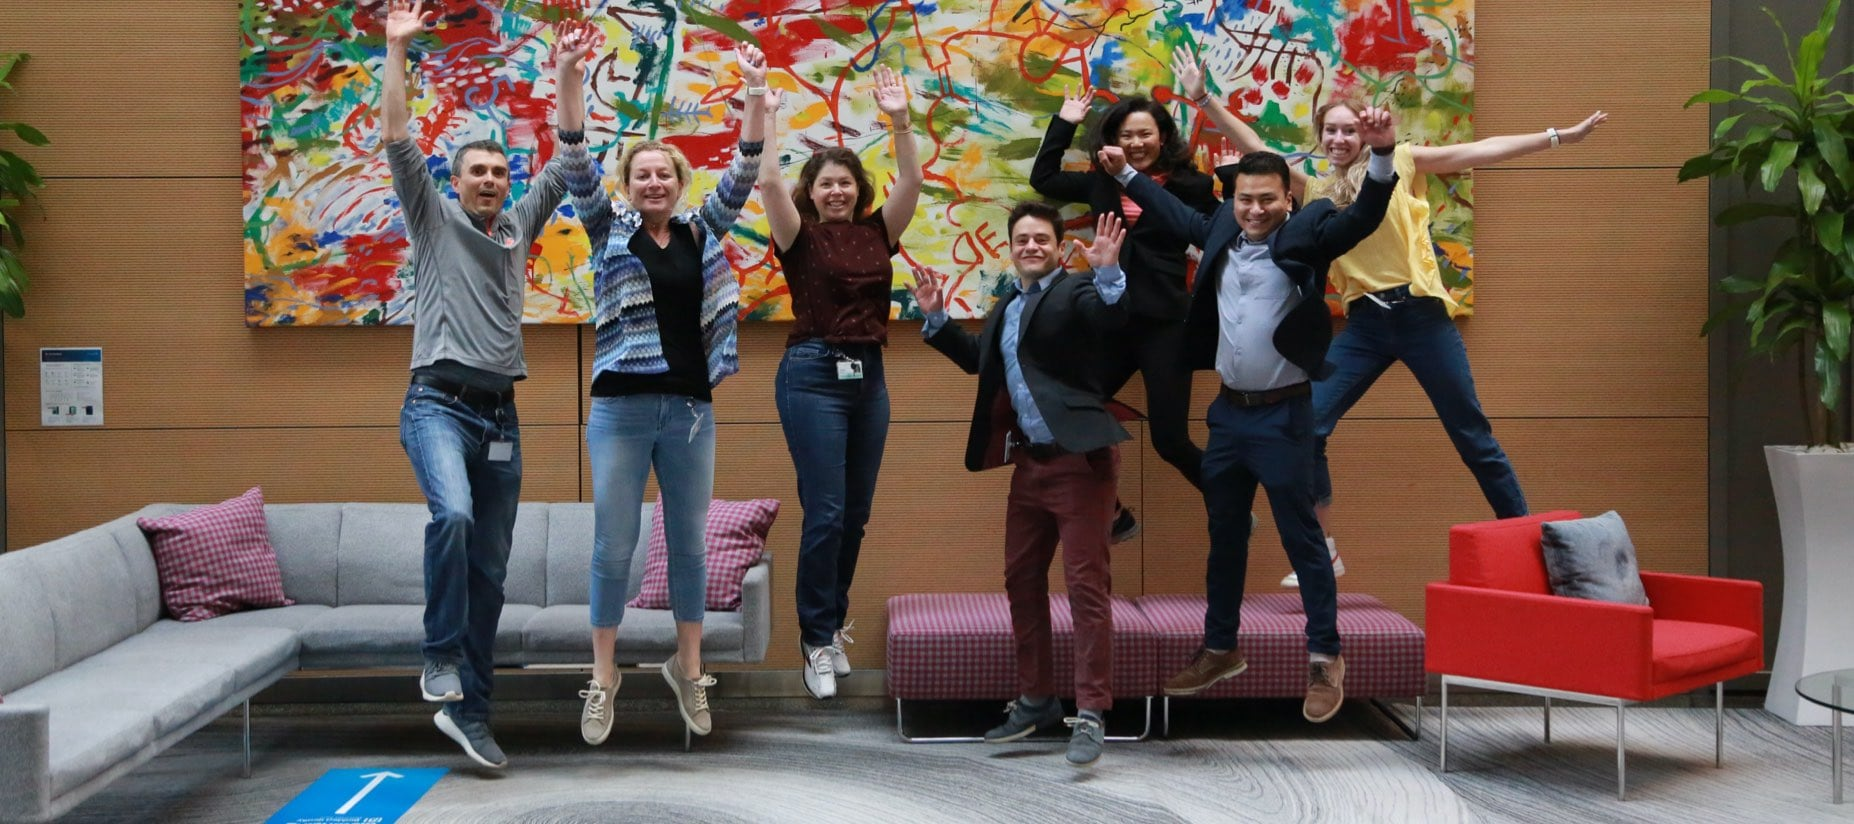 group of 7 people in a lobby in front of a colorful abstract painting, jumping in the air and smiling